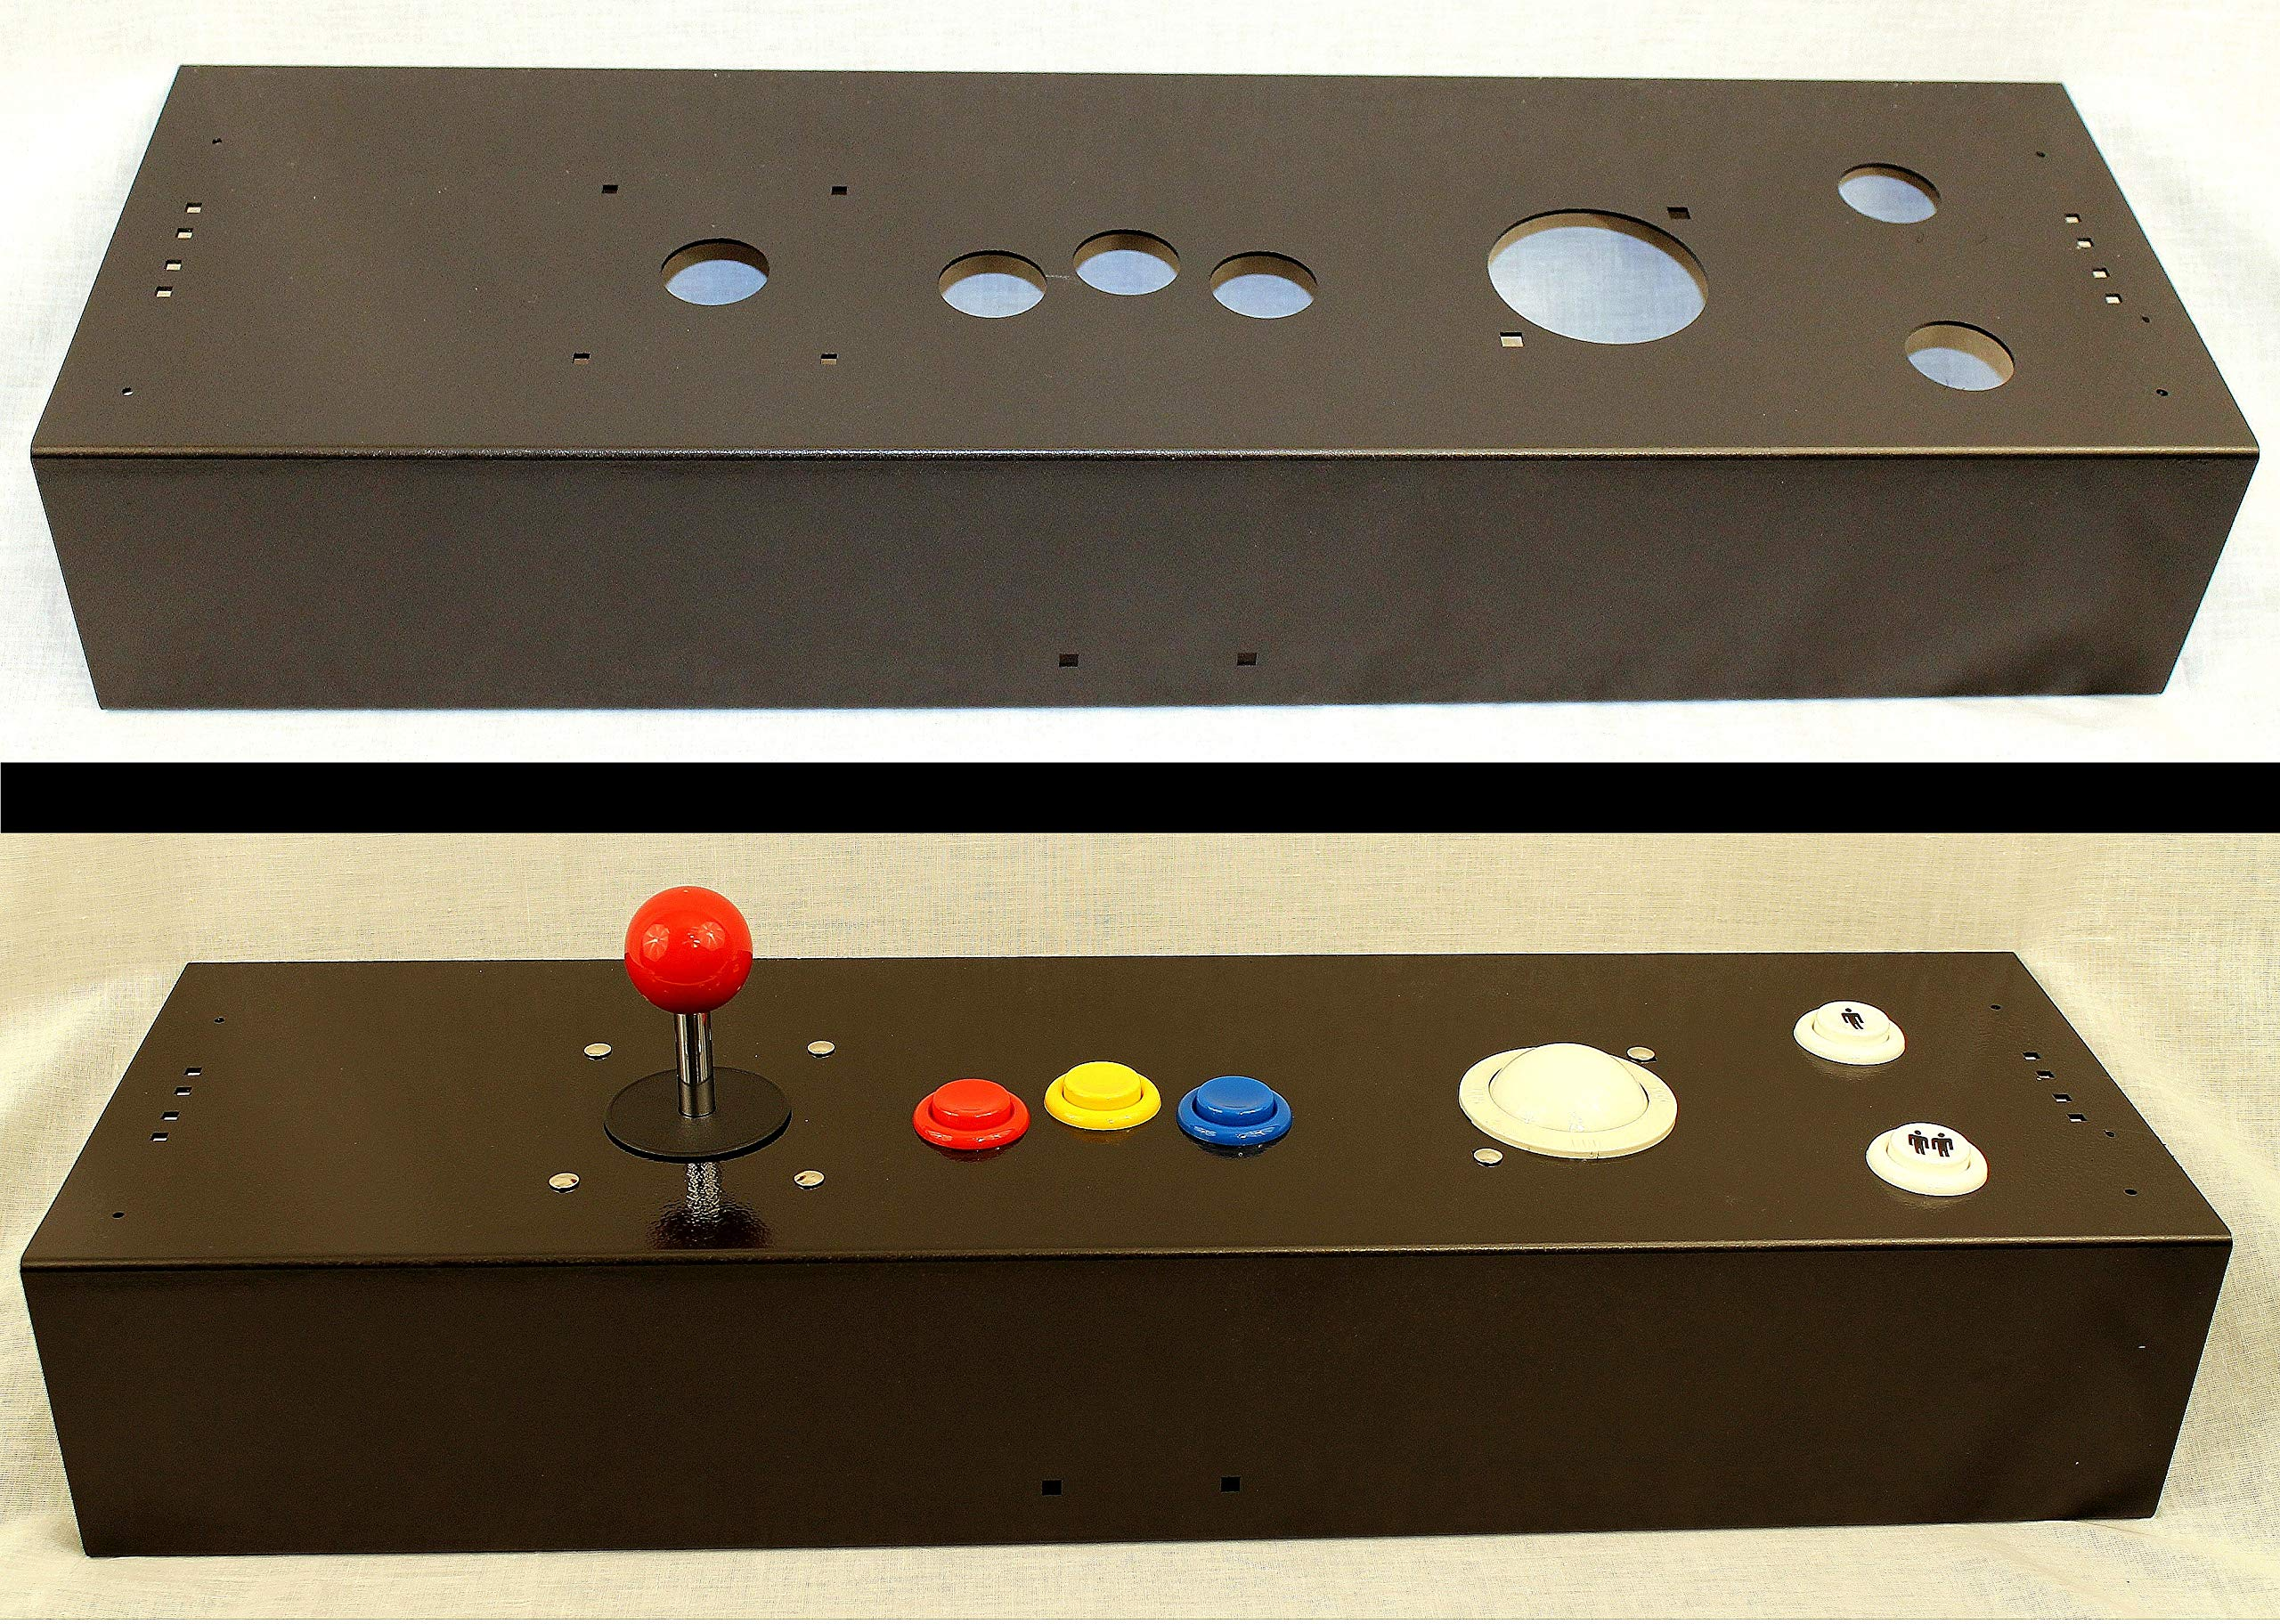 Arcade Mounting Bolt kit for RetroArcade.us 3 Inch trackball and control panels